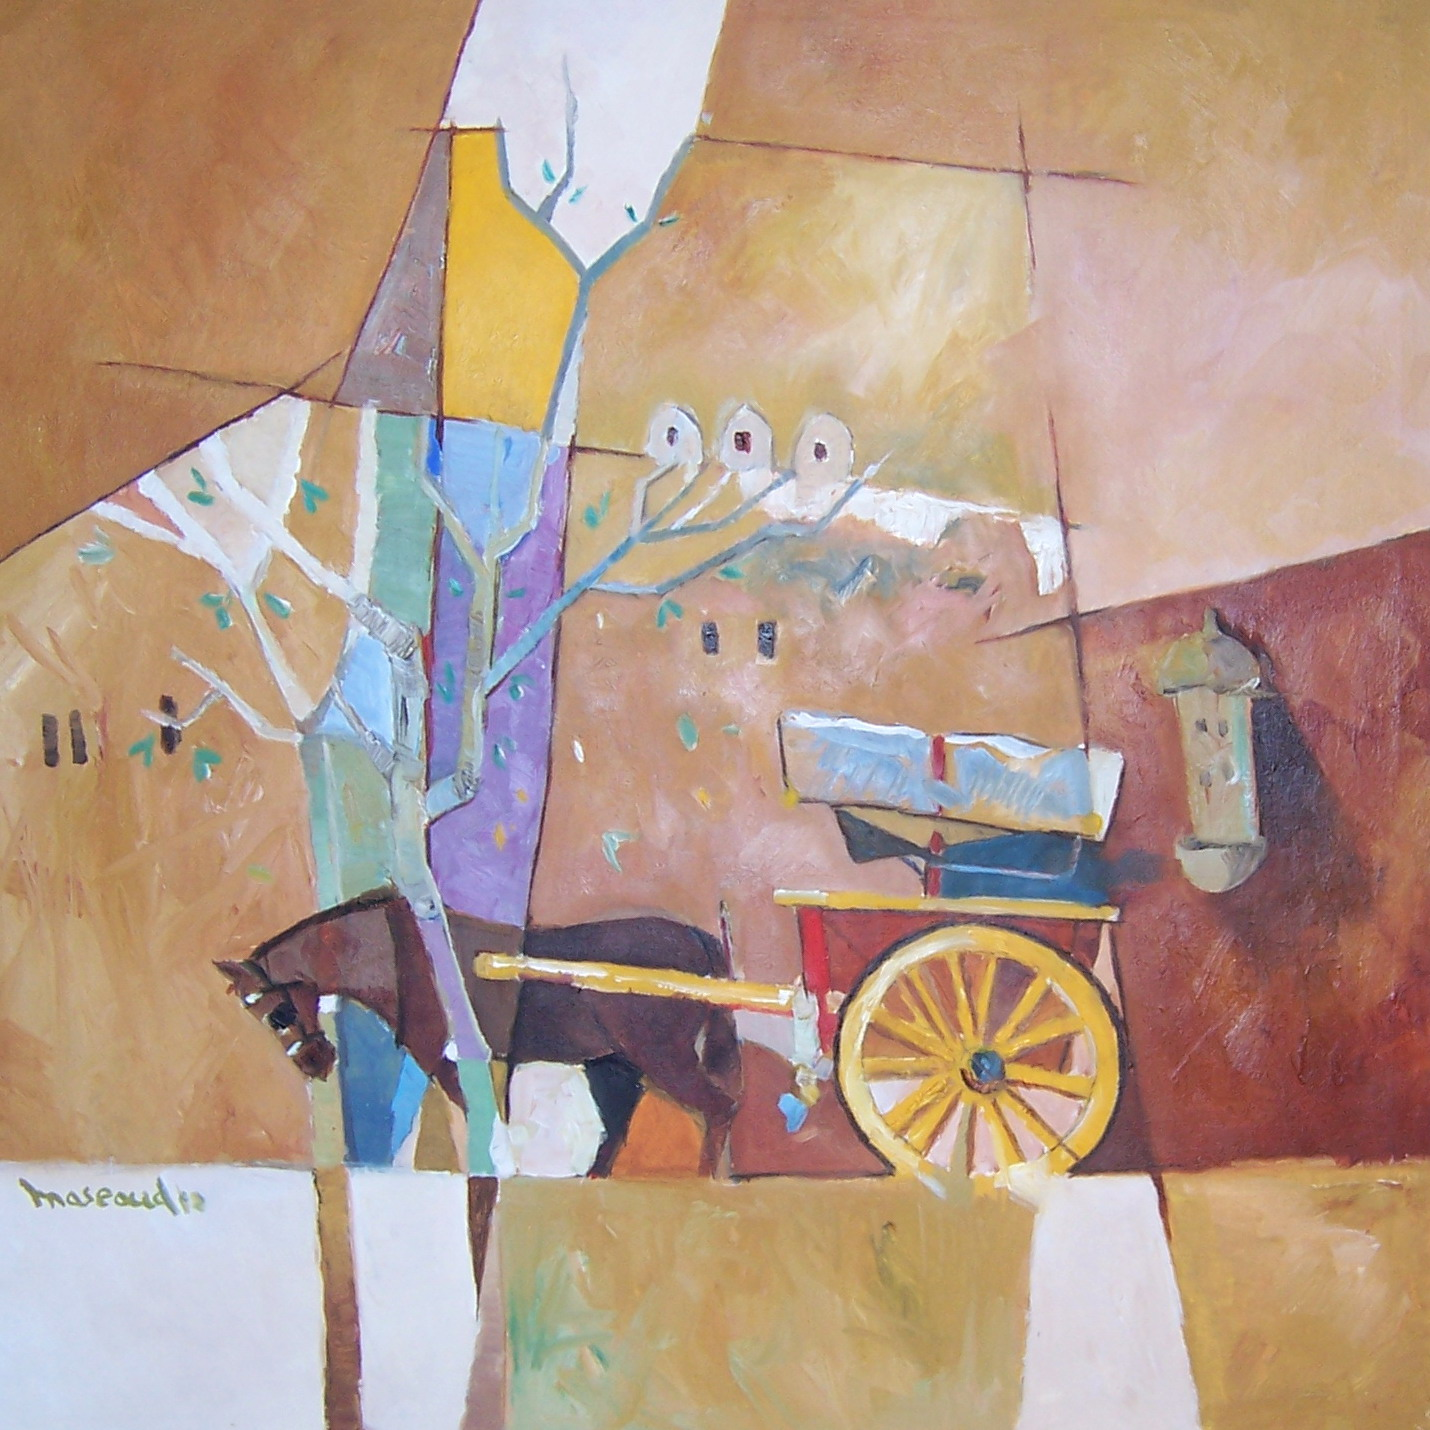 maseoud-ahmad-oil-on-canvas-24-x-24